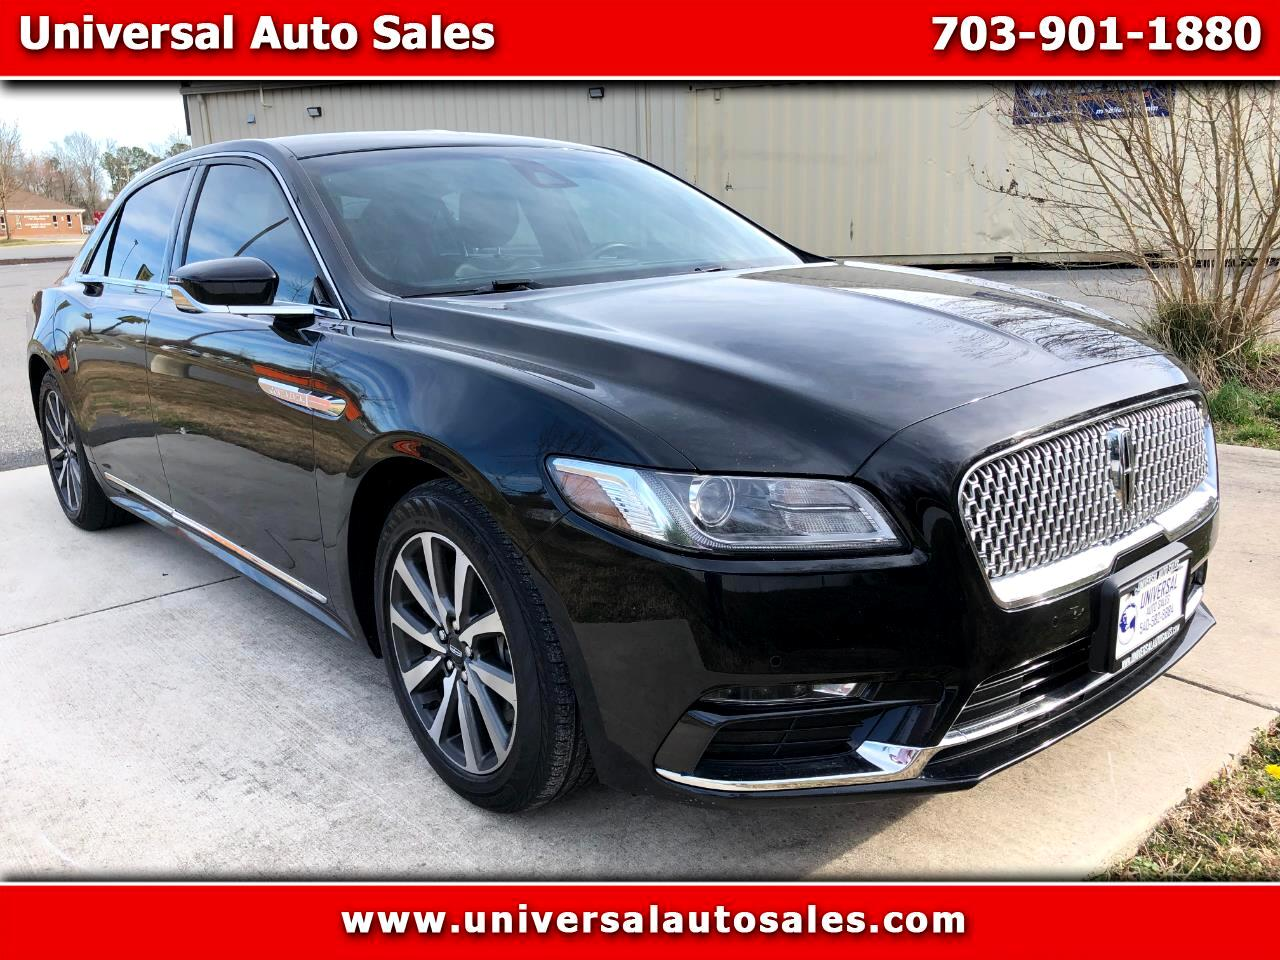 Lincoln Continental Livery AWD 2017